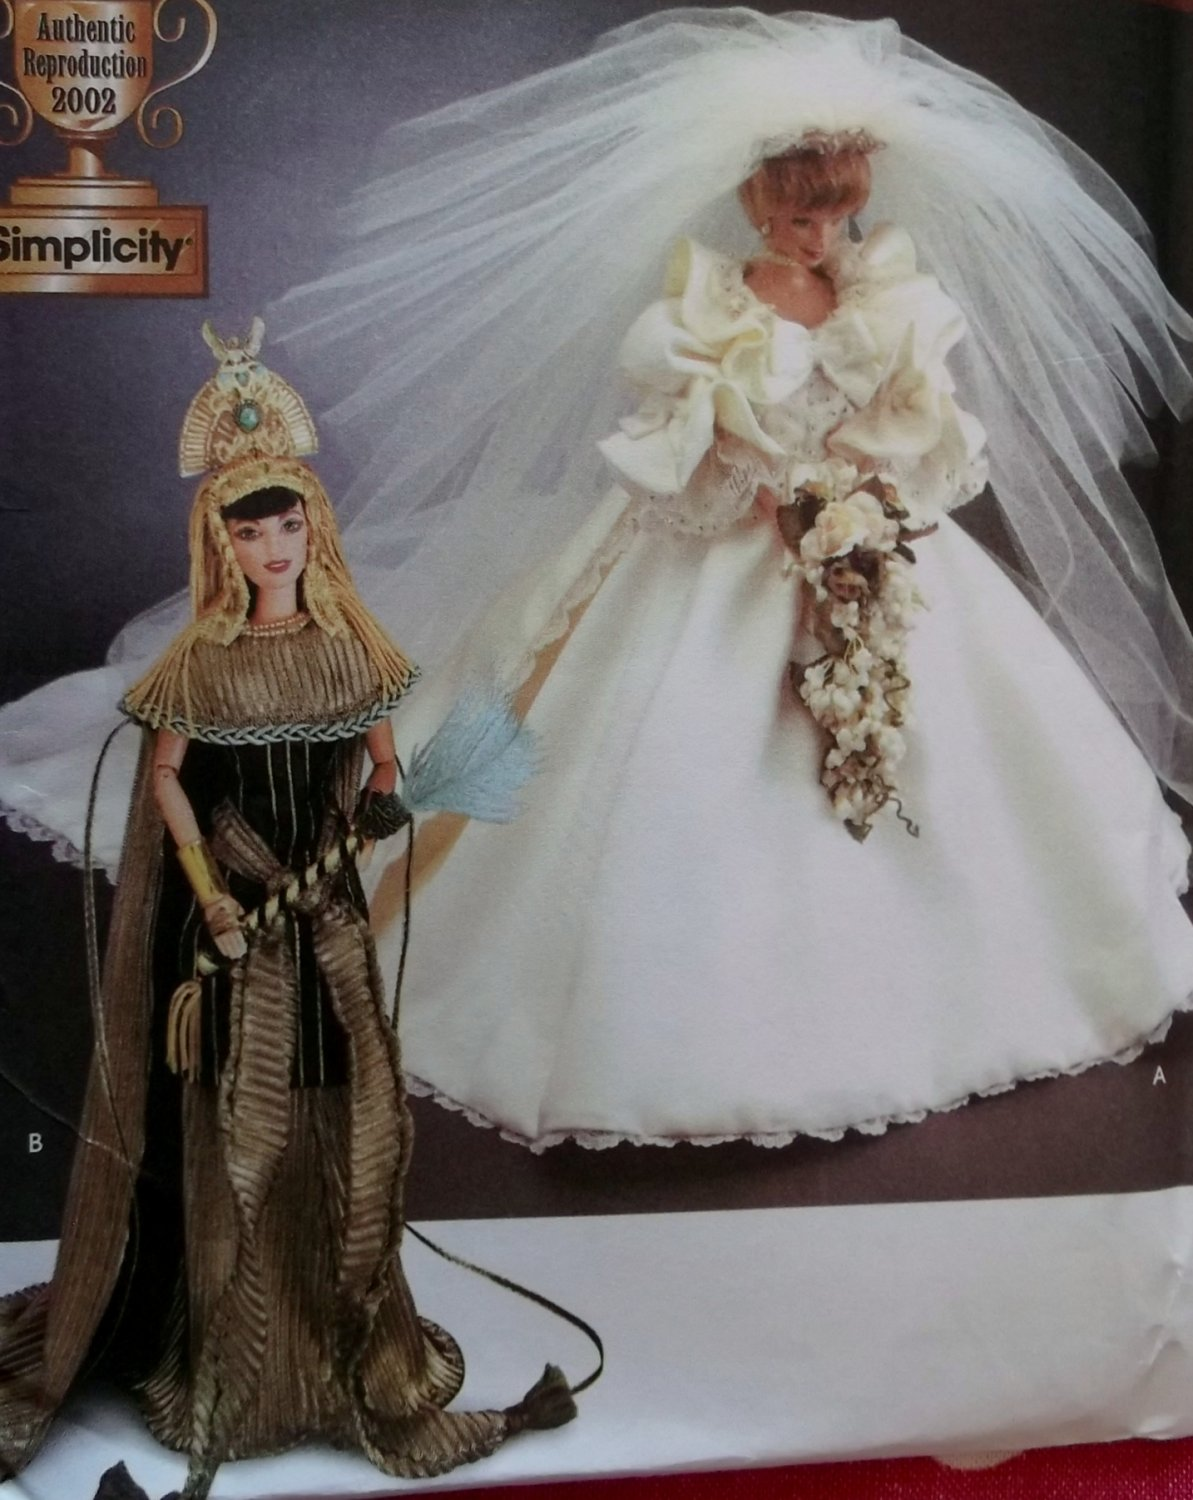 Diva Doll Collection 1 Princess Diana Wedding Gown And Cleopatra Simplicity 7